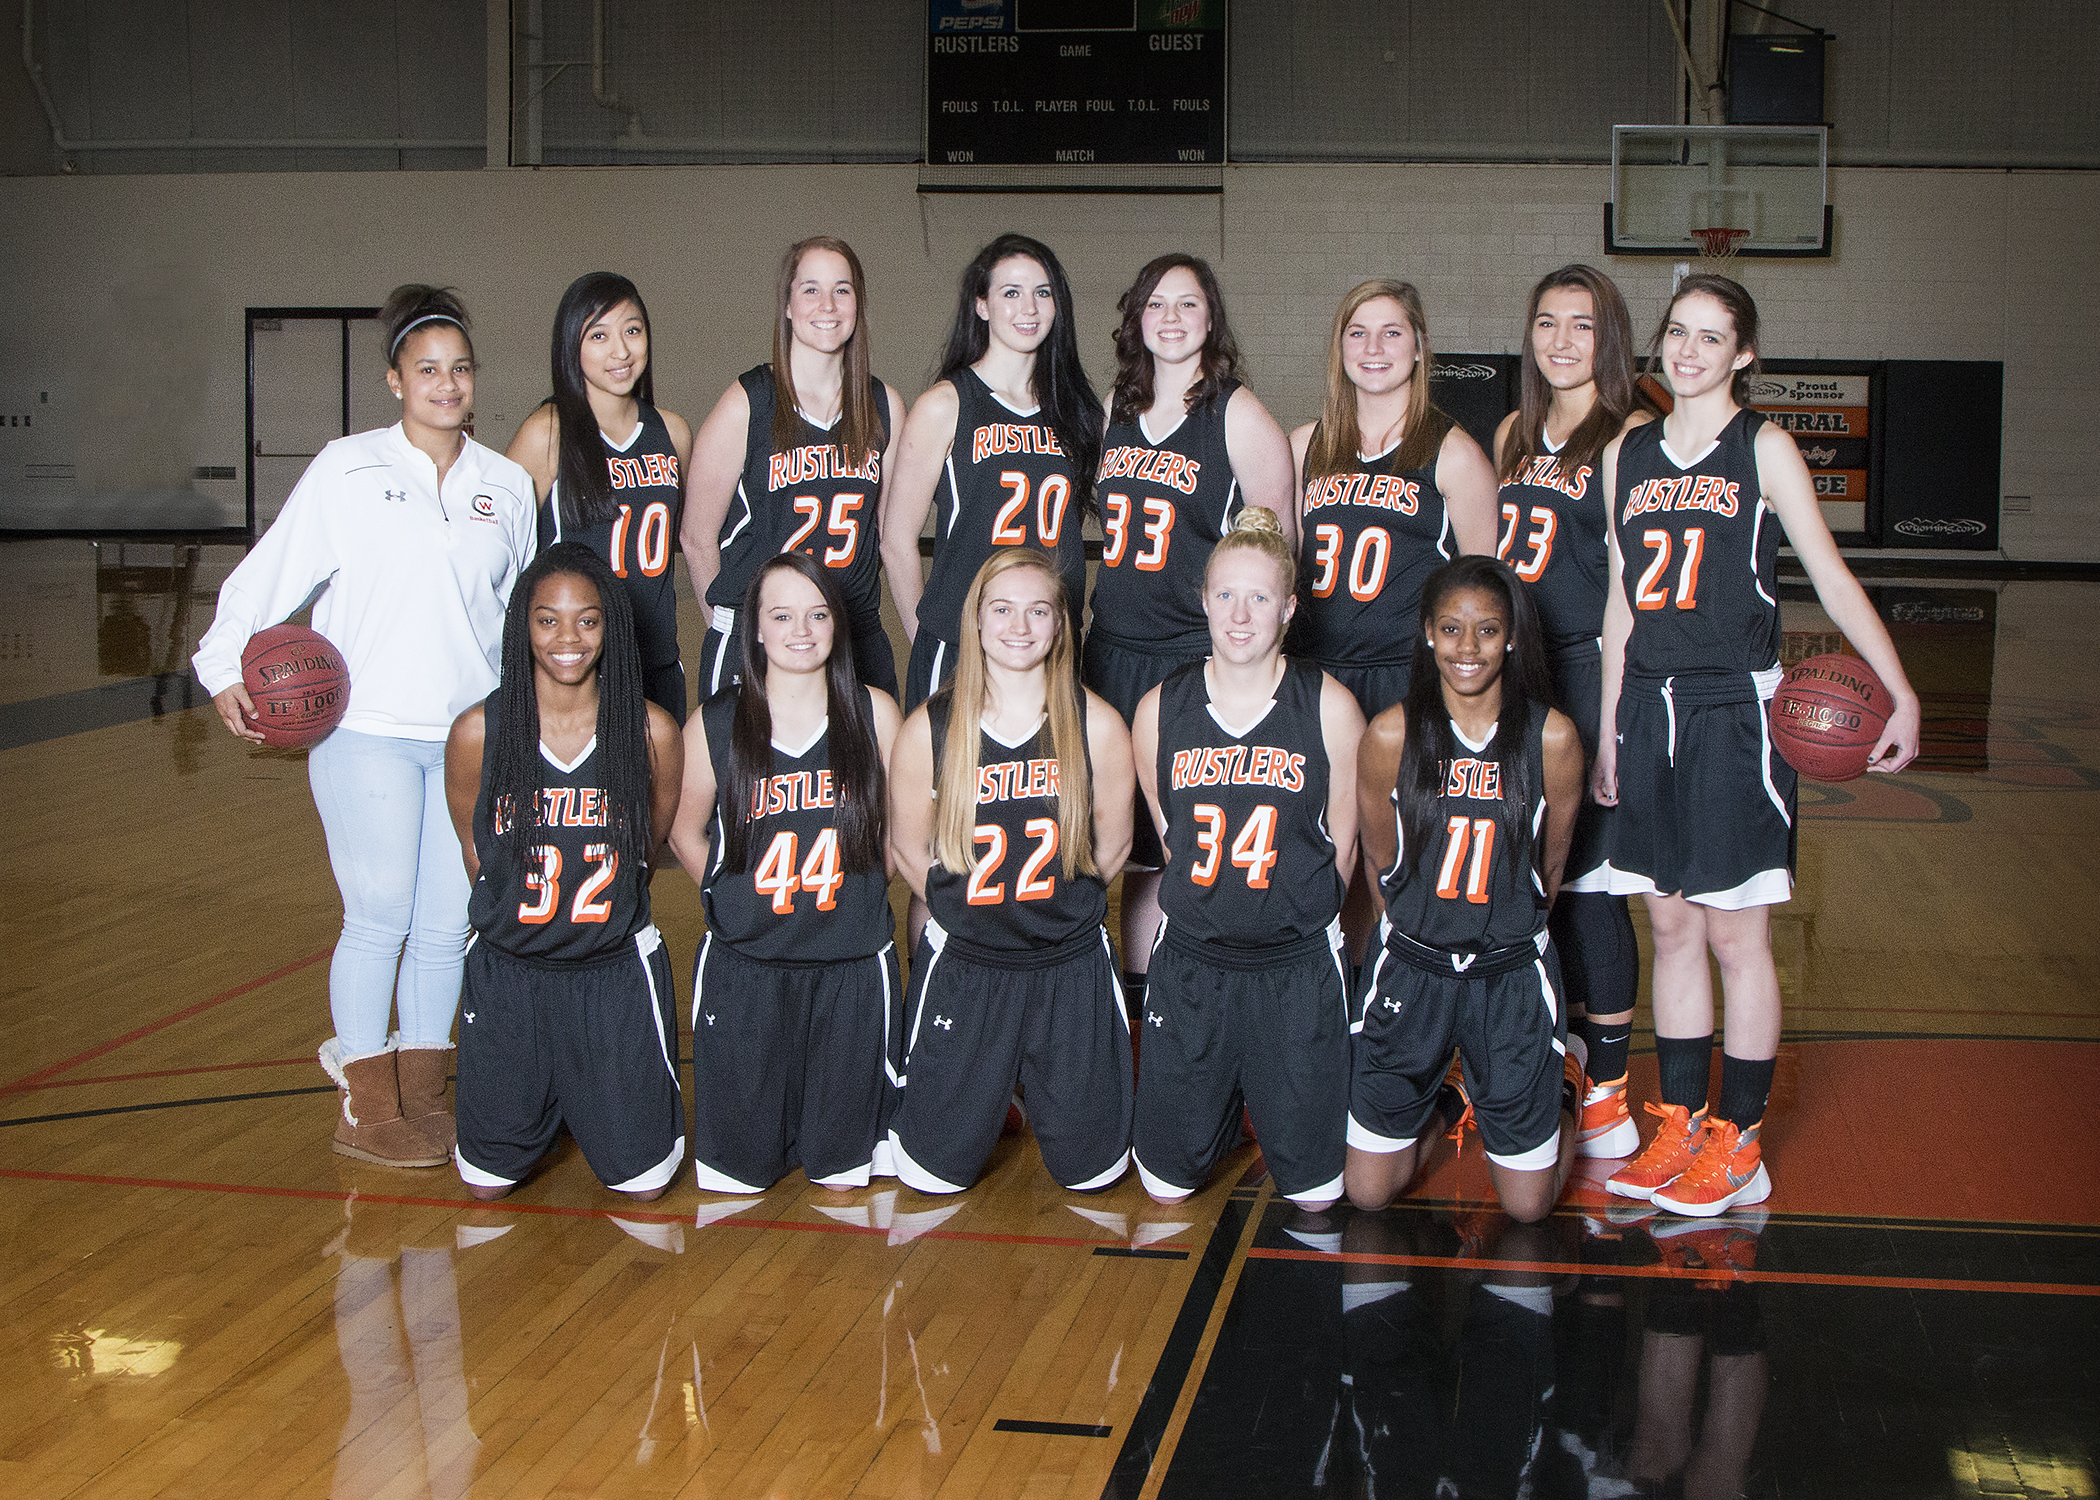 team photo of CWC women's basketball team 2015